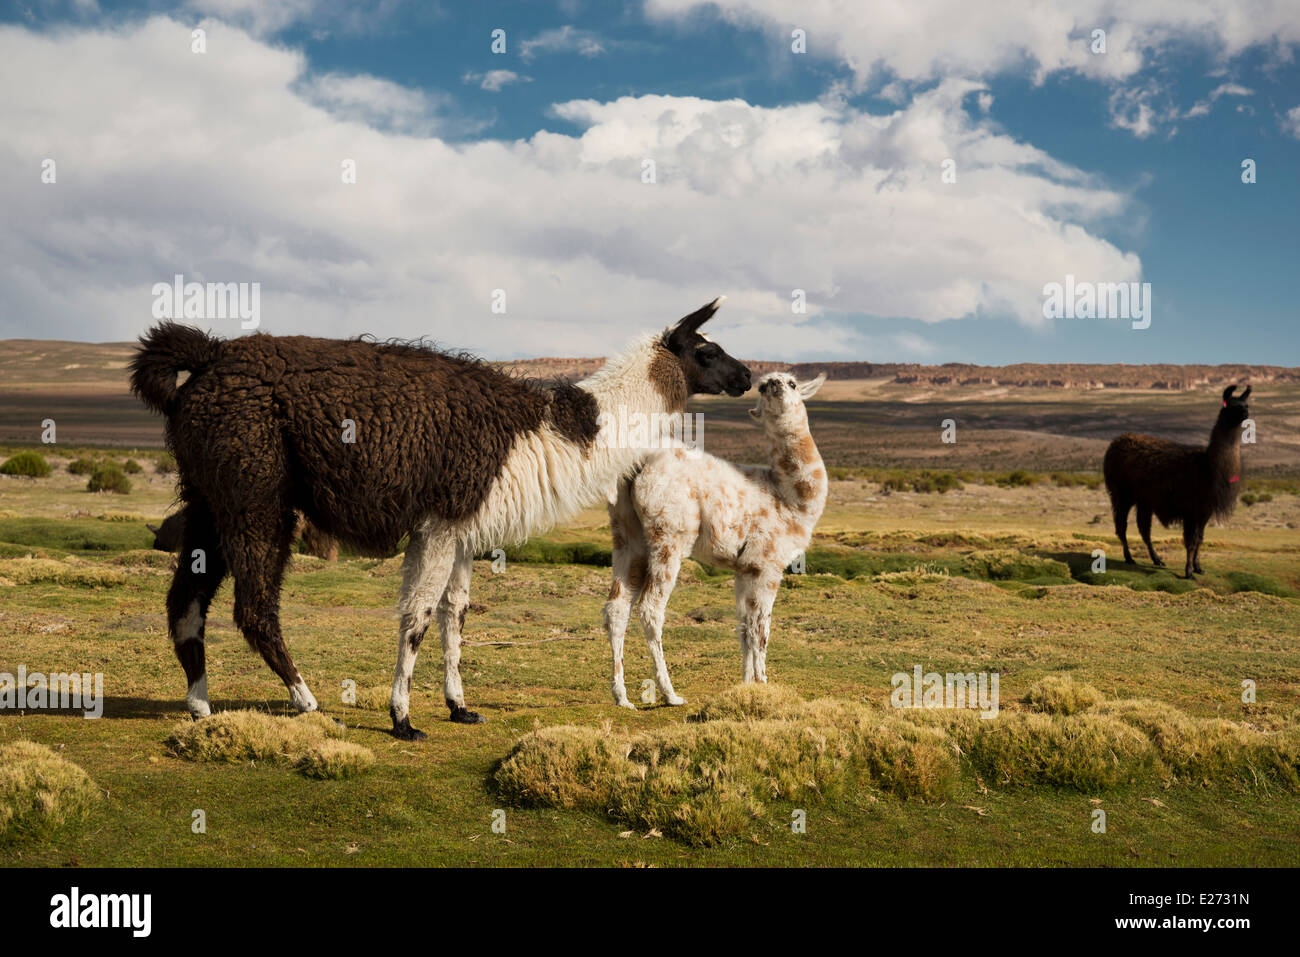 Mother and calf Llamas on the Southern Bolivian altiplano. - Stock Image